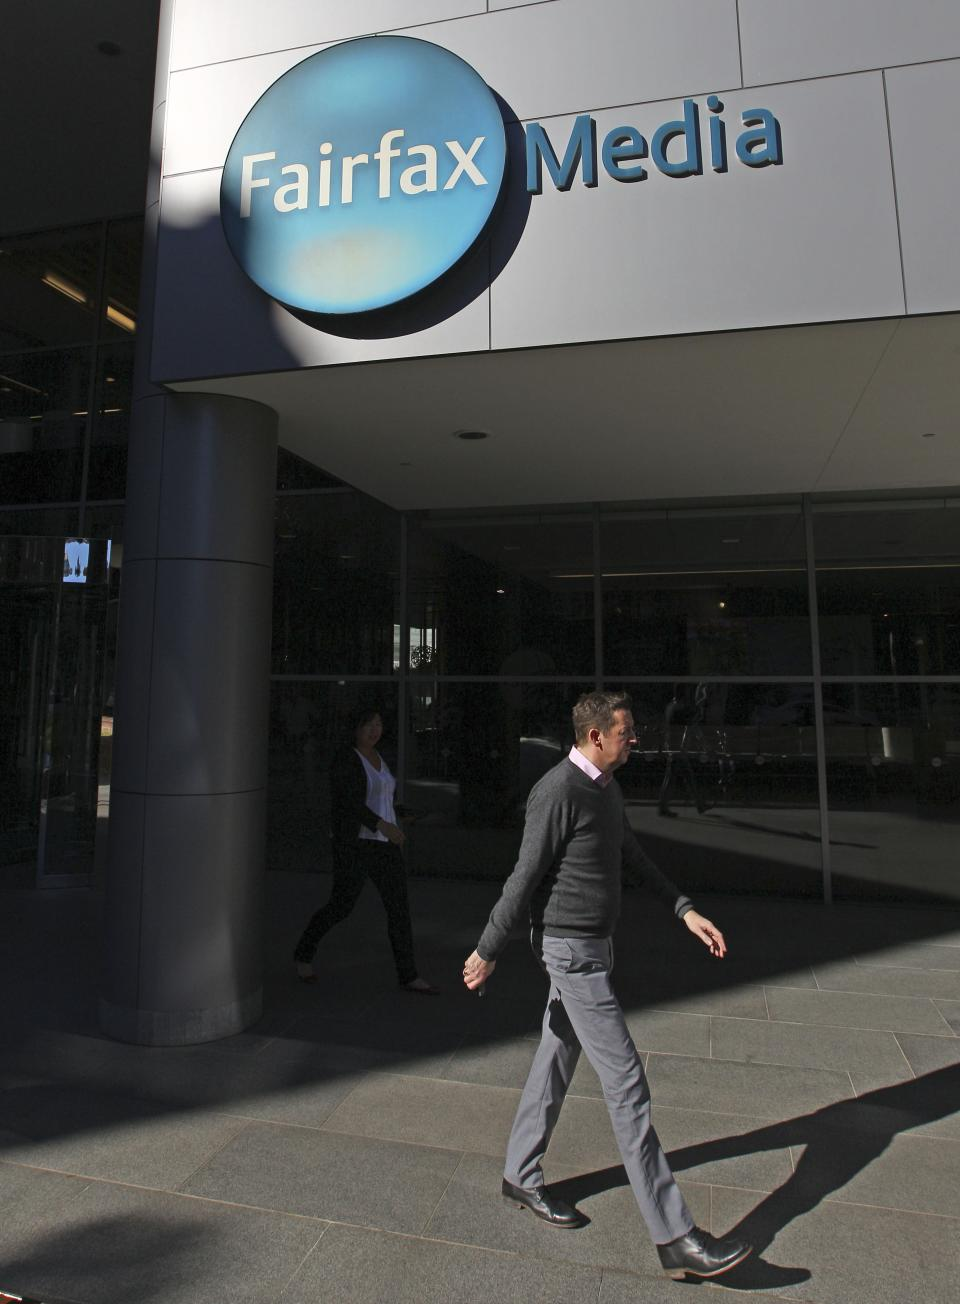 A man walks past the Fairfax headquarters in Sydney, Monday, June 18, 2012. Australian publisher Fairfax Media Ltd. said Monday it will shed 1,900 jobs over three years and erect pay walls for two flagship newspapers as readers increasingly move online. (AP Photo/Rick Rycroft)